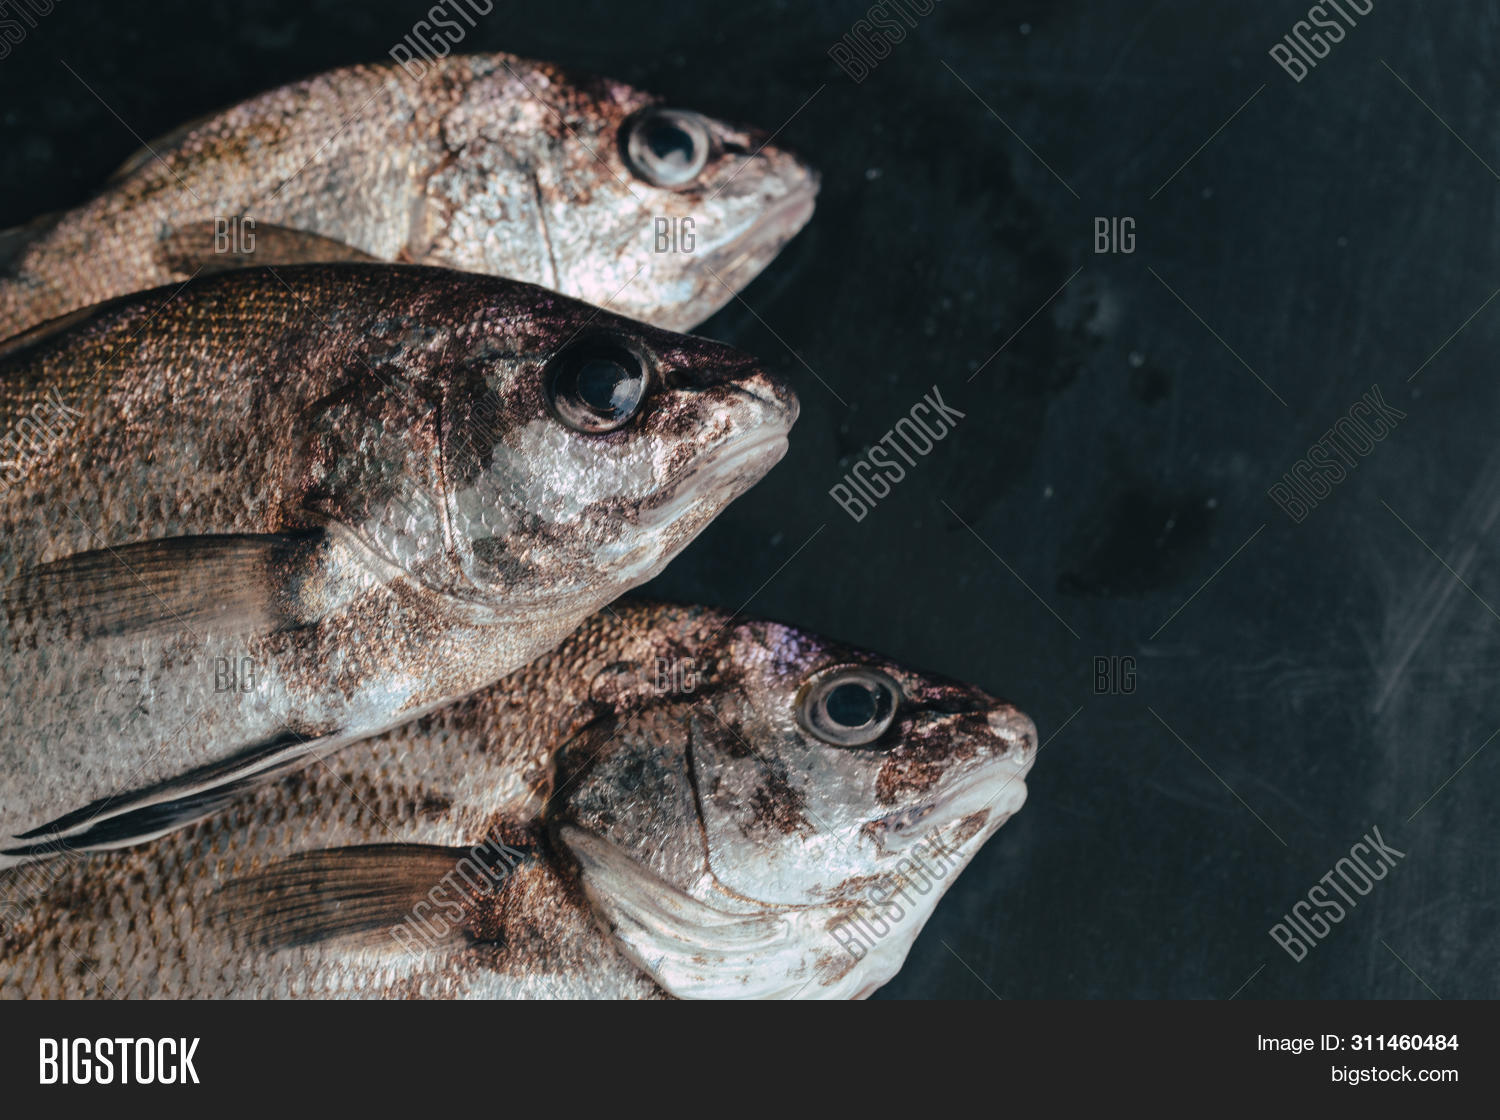 animal,atlantic,black,catch,closeup,cold,cook,cooking,delicious,dorada,eat,eating,fillet,fish,fishing,food,fresh,freshwater,frozen,gastronomy,gourmet,grill,healthy,ingredient,lifestyle,market,meal,menu,natural,nature,nutrition,omega,one,organic,product,raw,recipe,restaurant,river,salmon,sea,seafish,seafood,shellfish,stone,tasty,whole,wild,wildlife